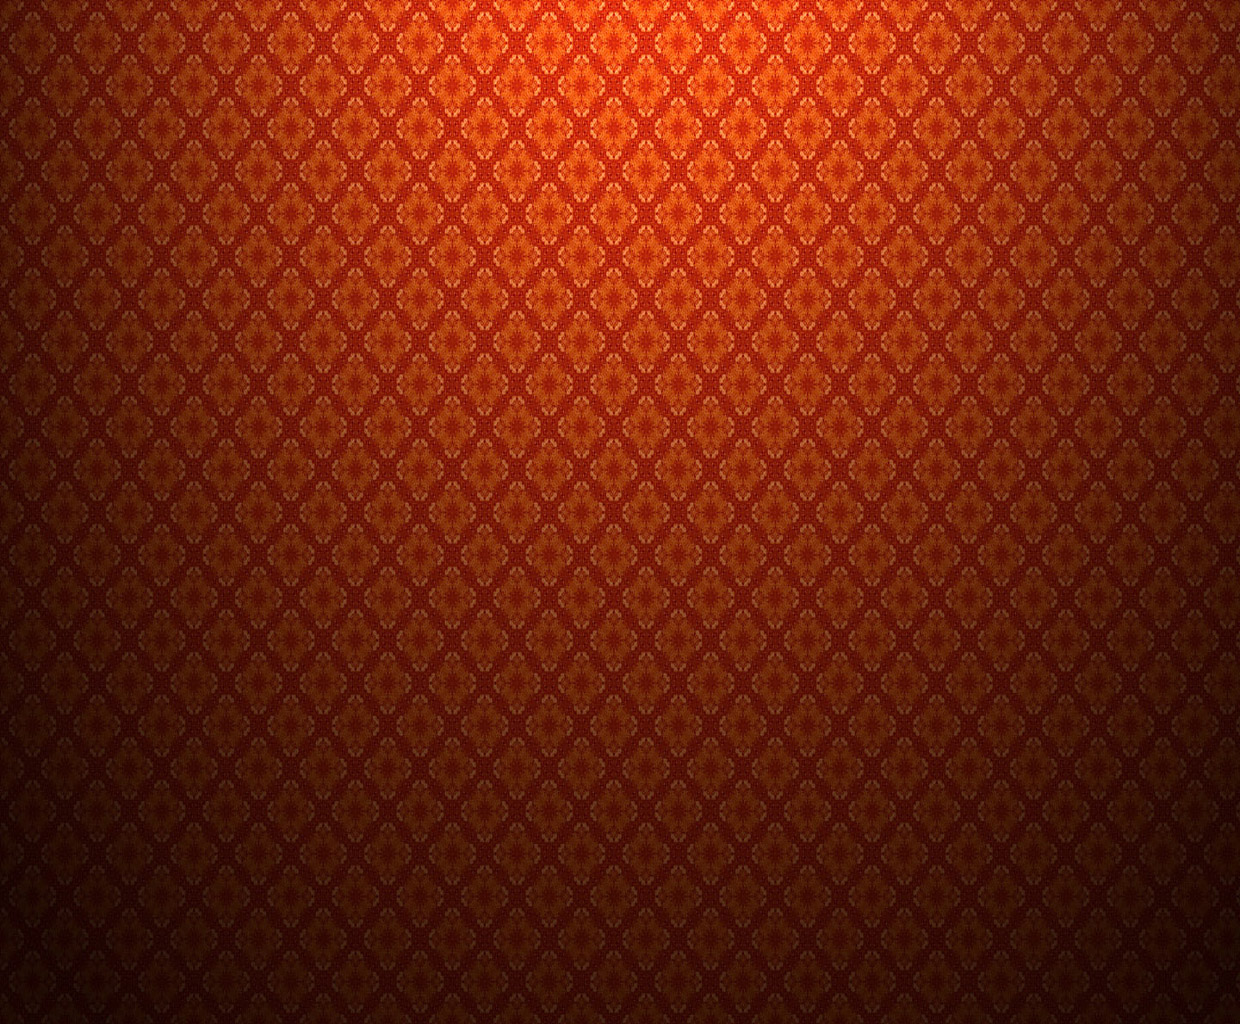 Merry Christmas 3d Wallpaper Hd Download Orange Wallpaper Pattern Gallery